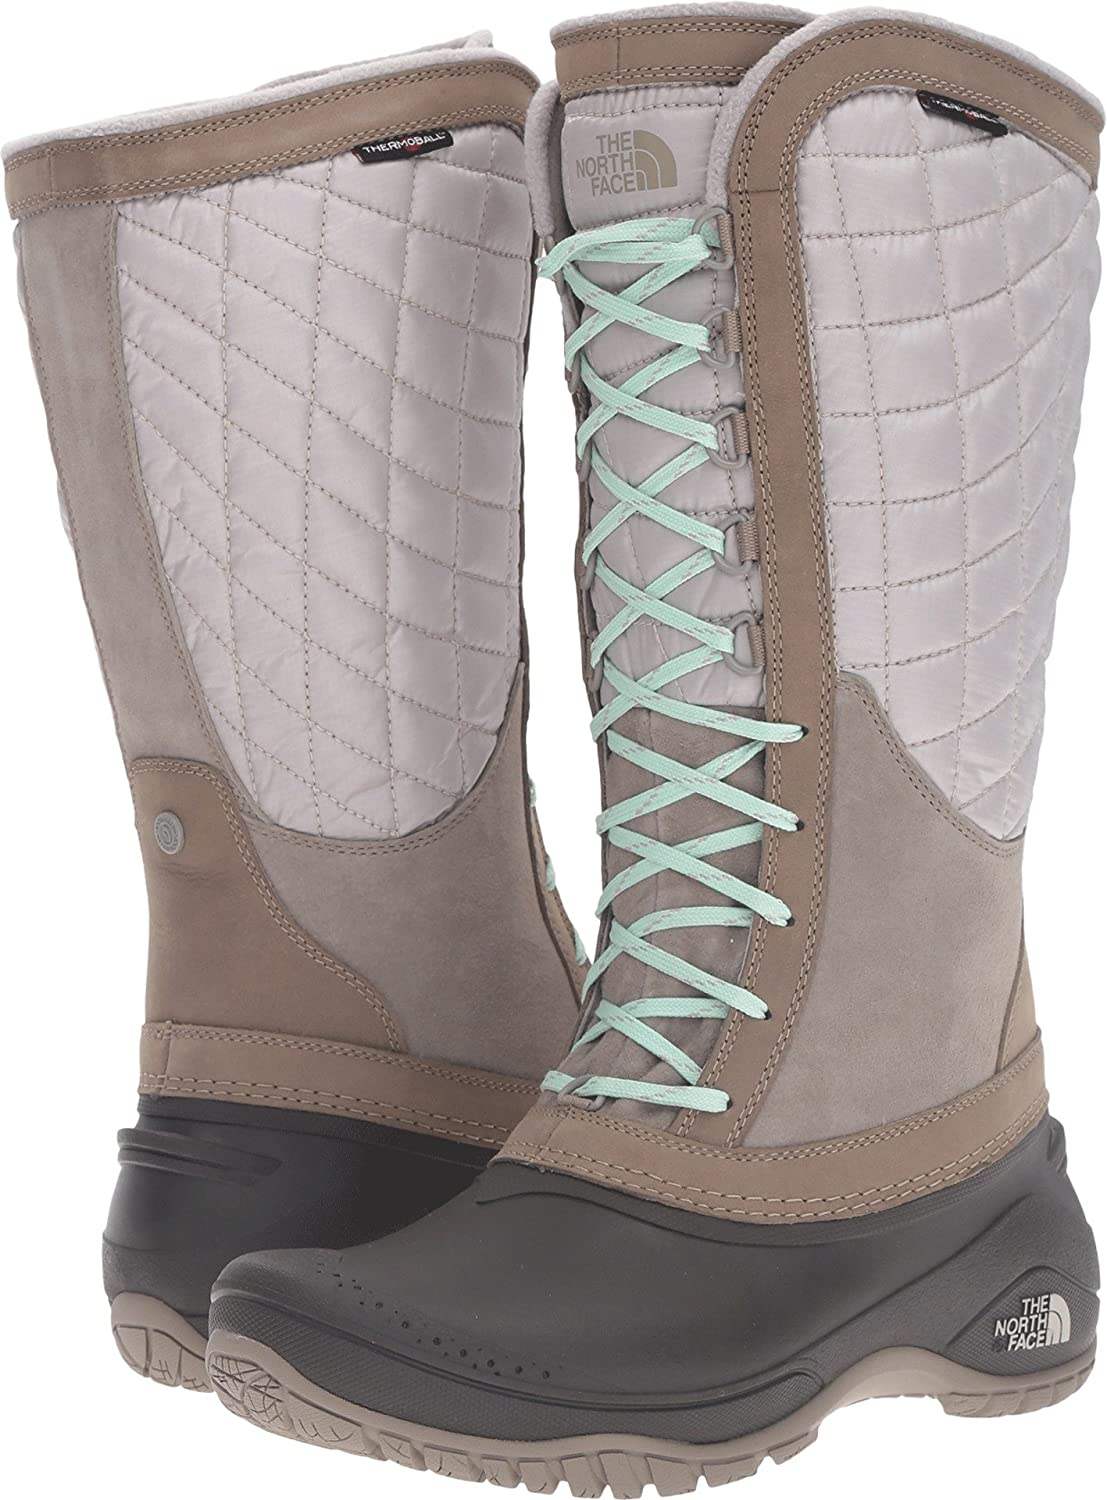 The North Face Thermoball Utility Boot Women's B018WTBH98 7.5 B(M) US|Split Rock Brown/Subtle Green (Prior Season)